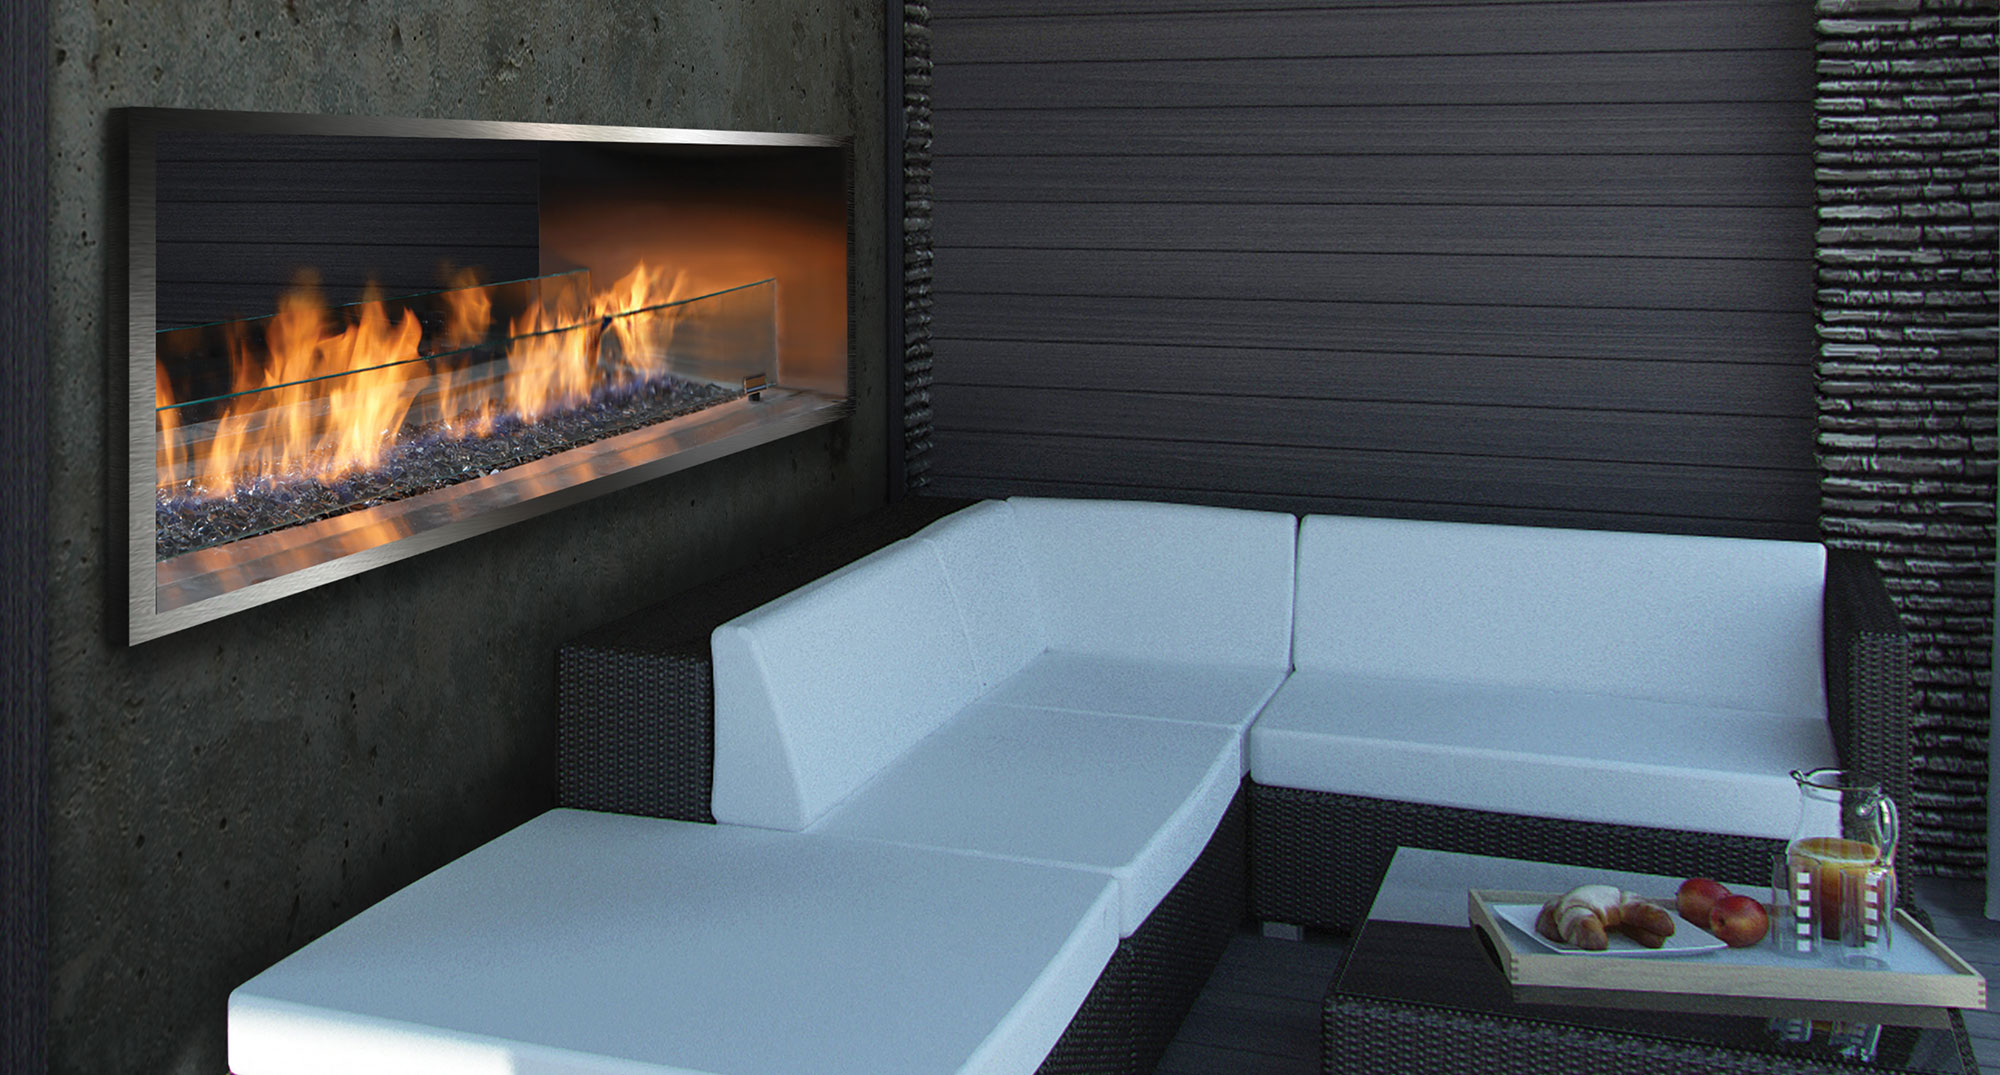 OFP7972S2N: Outdoor Linear Fireplace with MQ65C Glass Media, OFP79SS Stainless Steel Surround